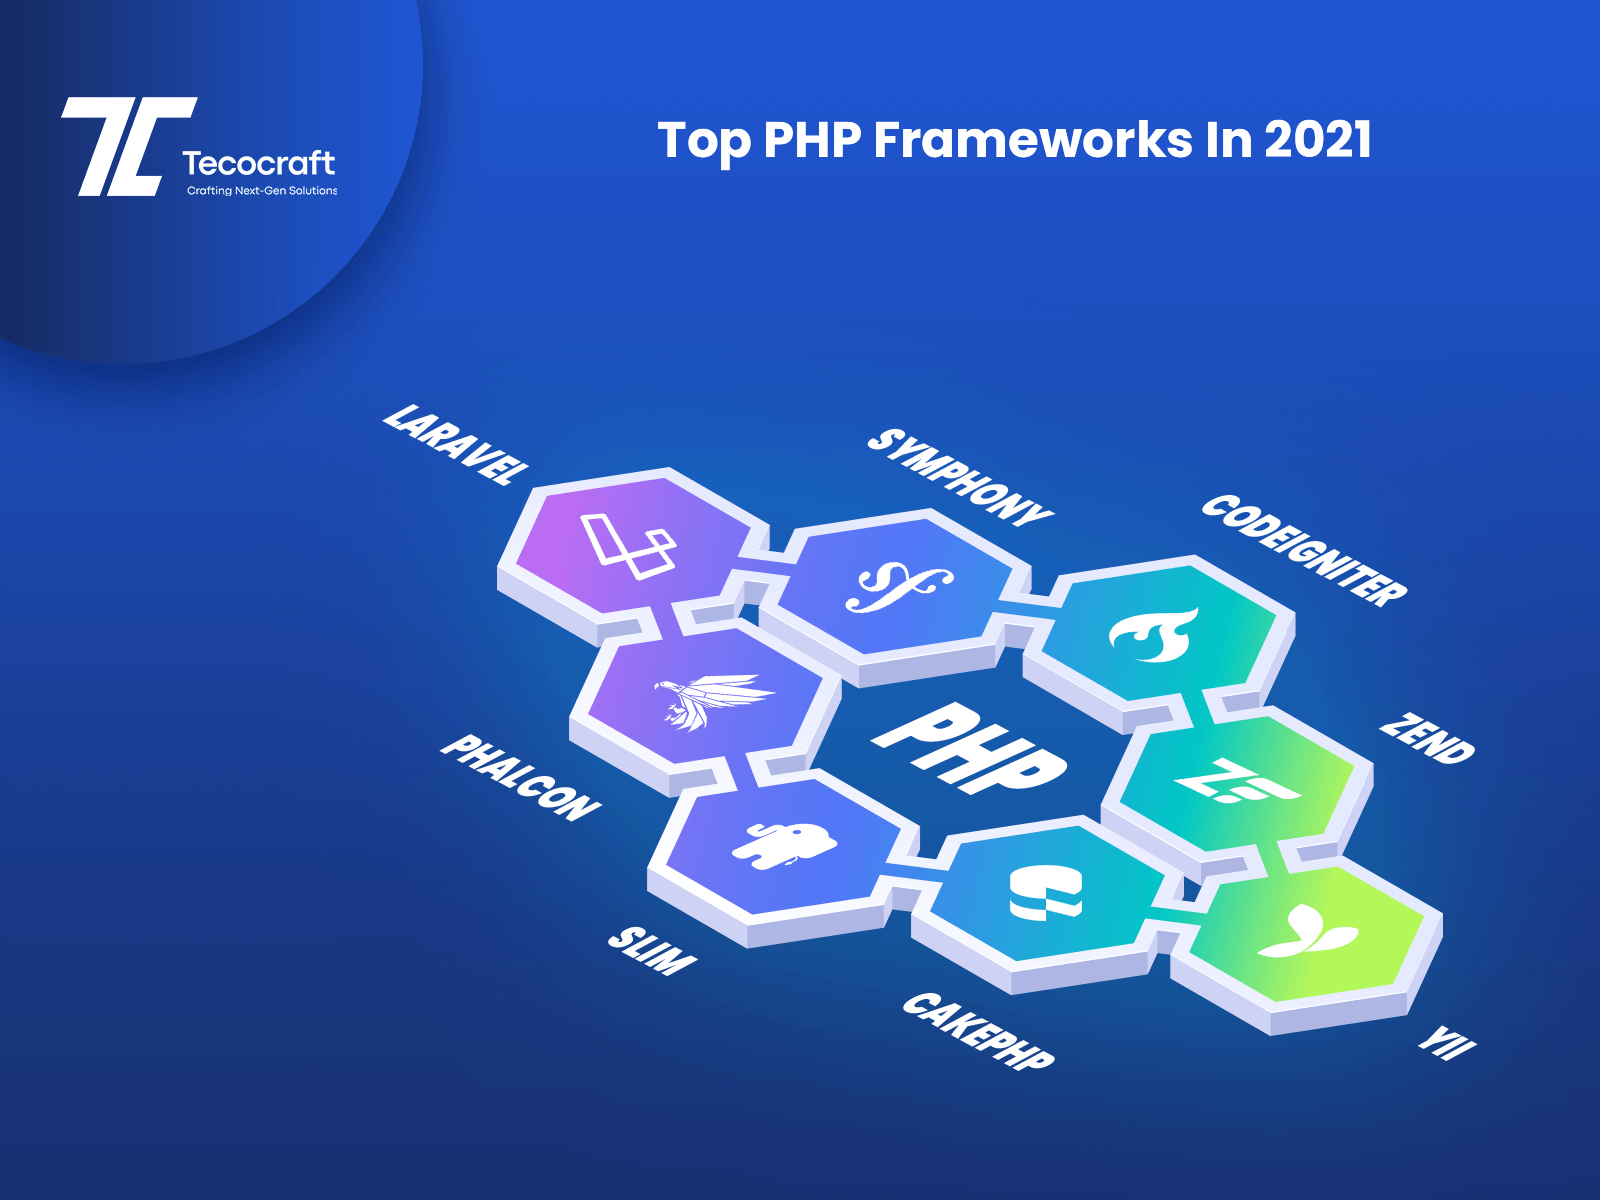 Top PHP Frameworks In 2021